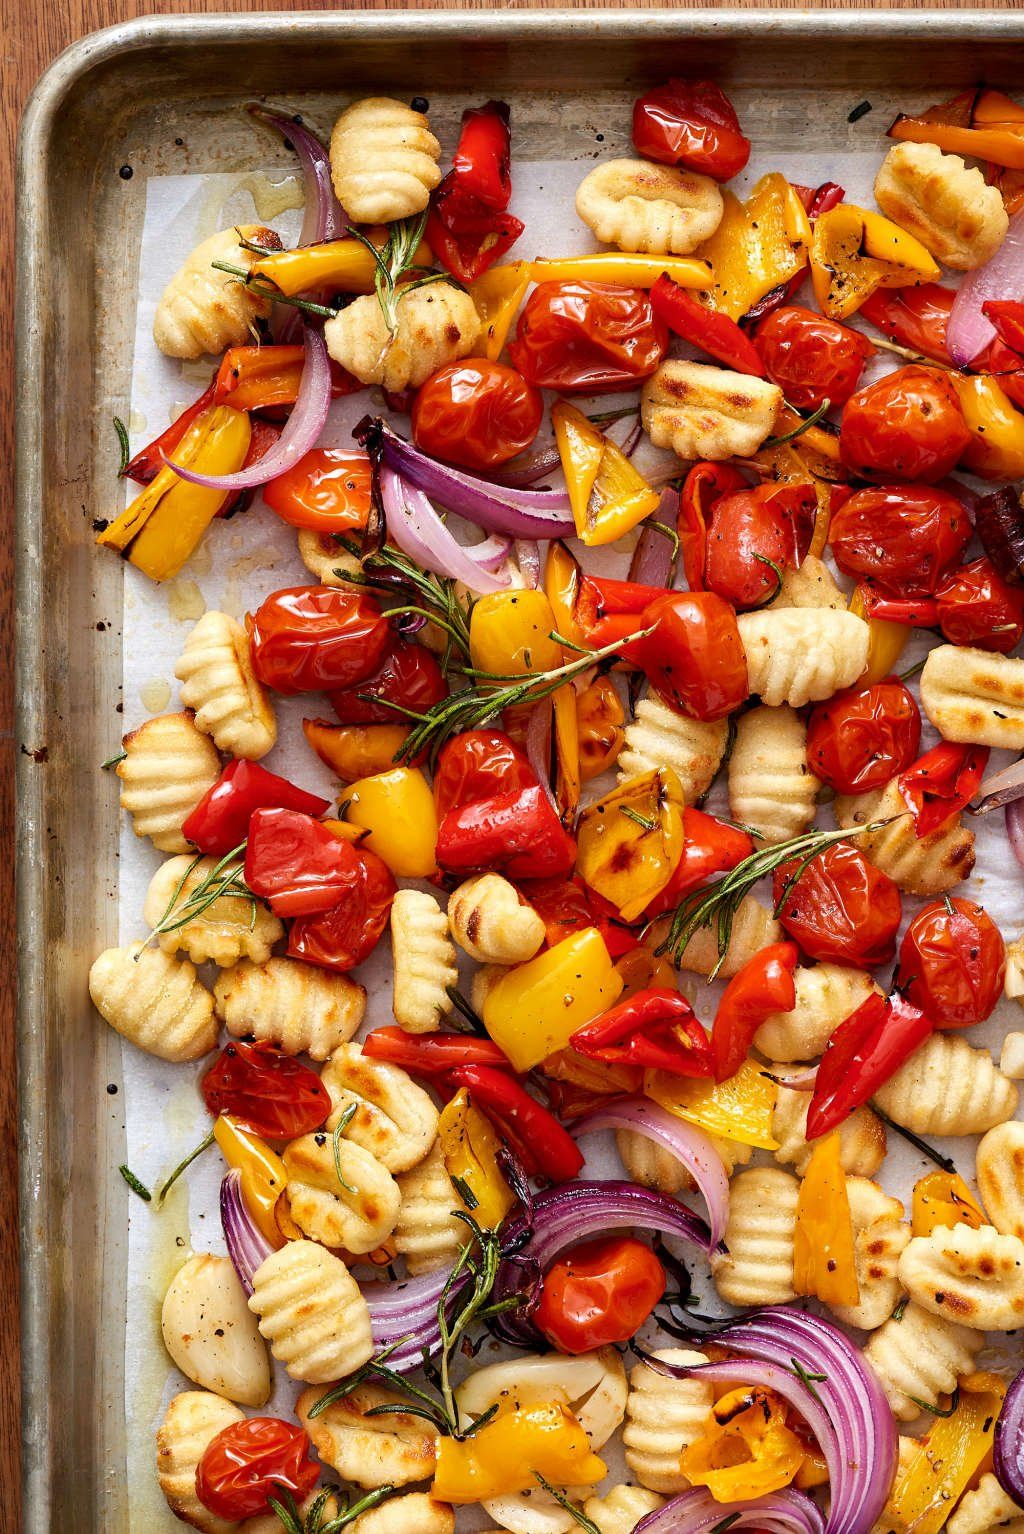 Crispy Sheet Pan Gnocchi and Veggies images